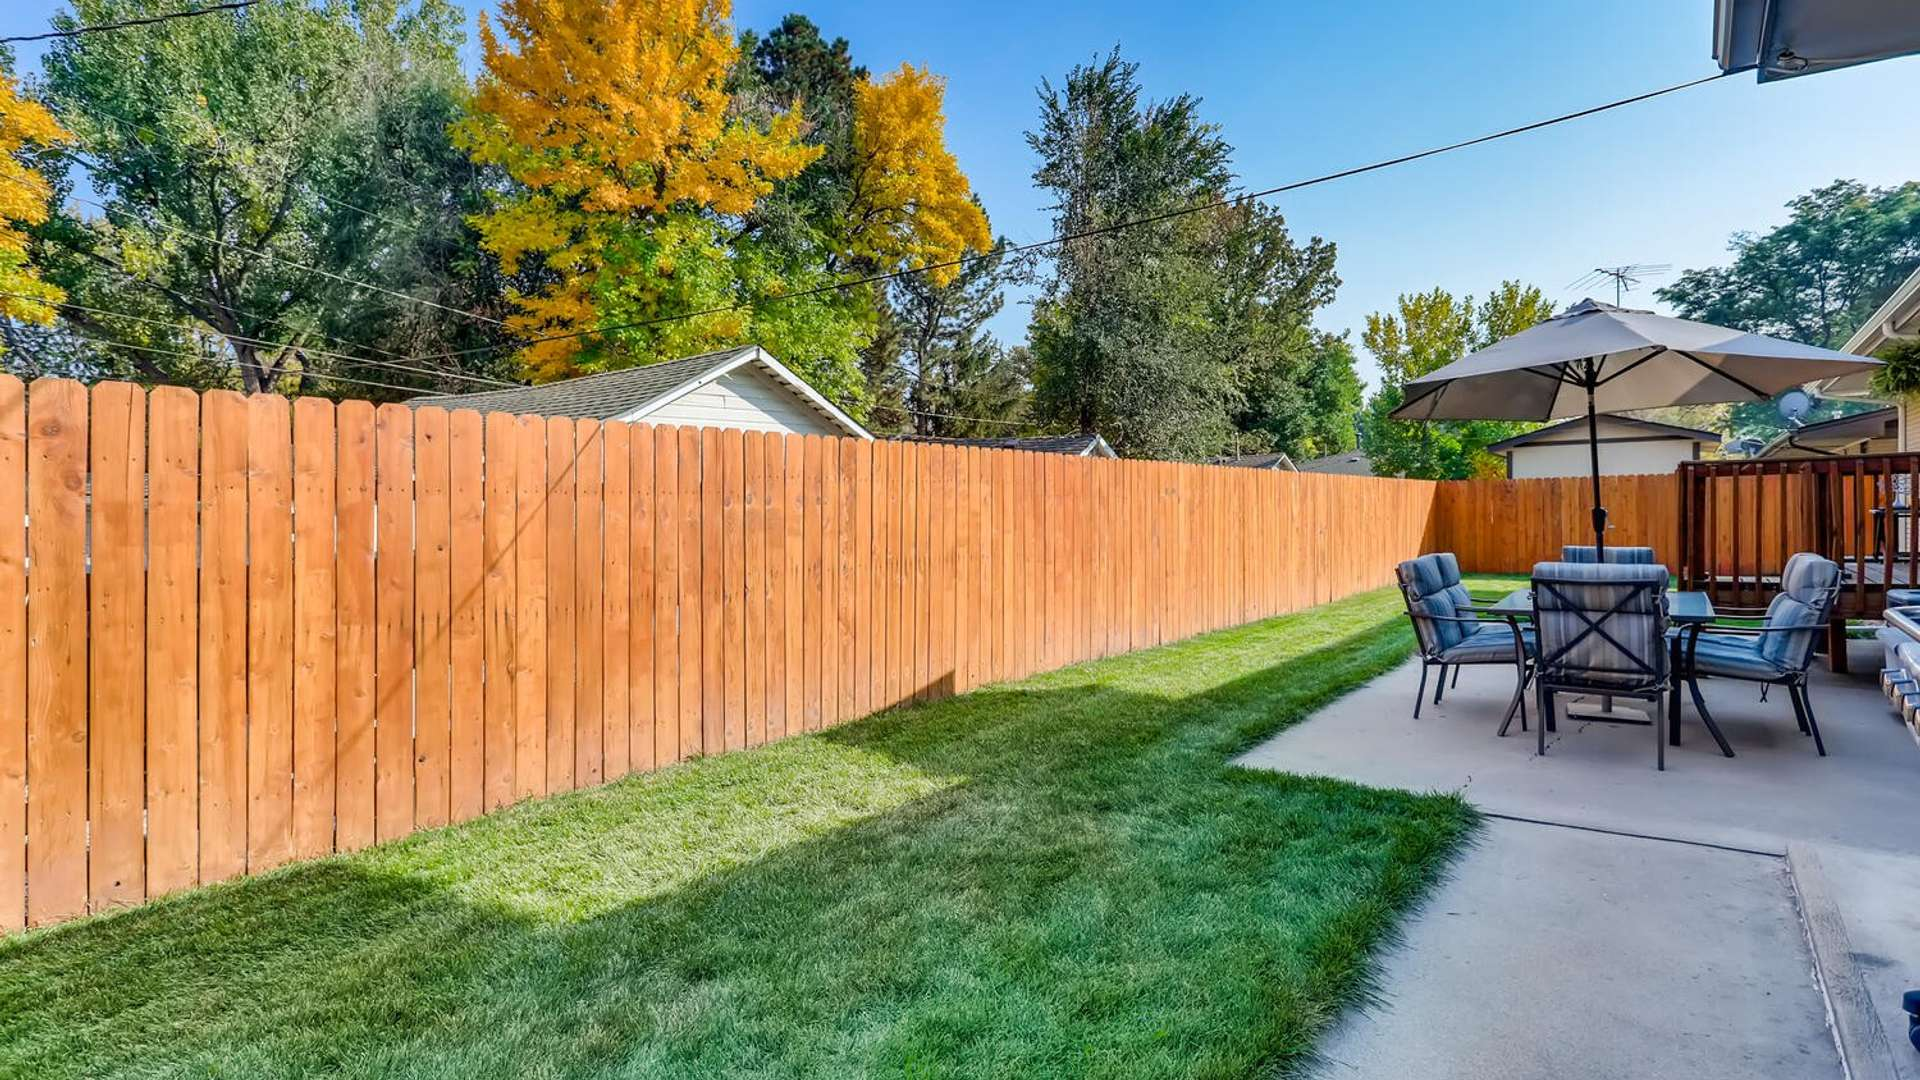 34 of 38. Newer privacy fence and well taken care of lawn